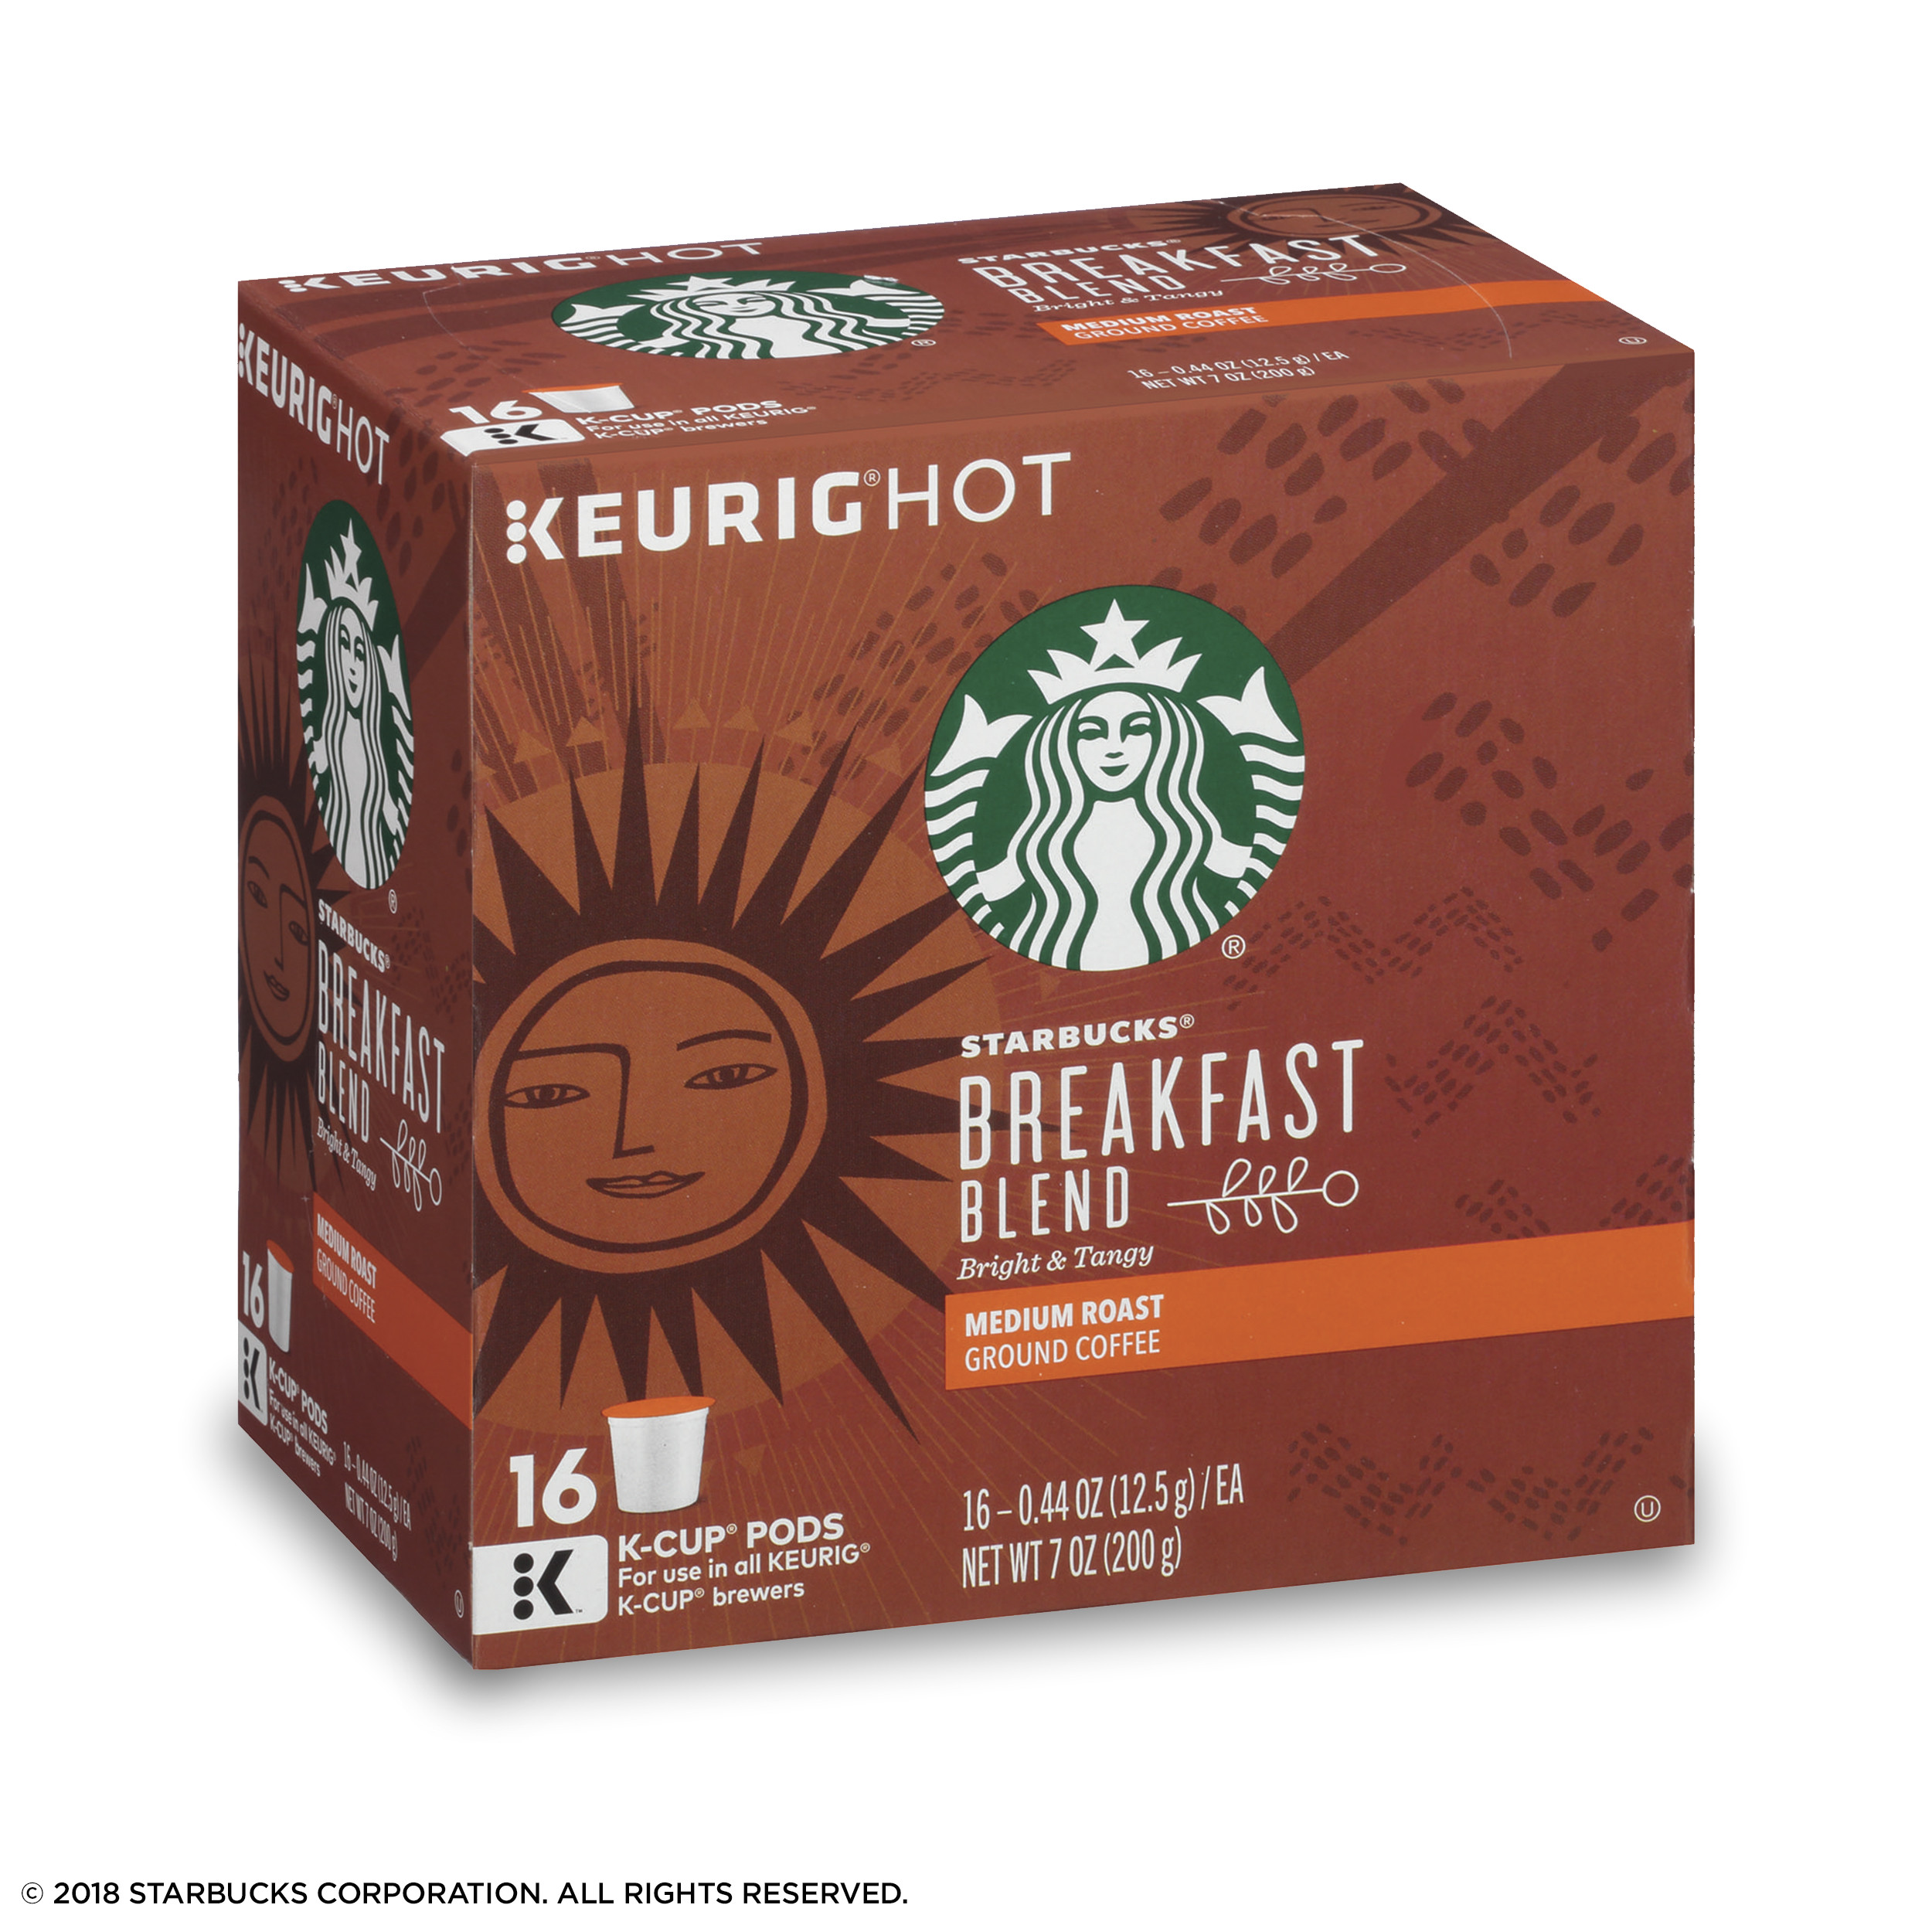 starbucks breakfast blend medium roast single cup coffee for keurig brewers 1 box of 16 16 total k cup pods walmart com